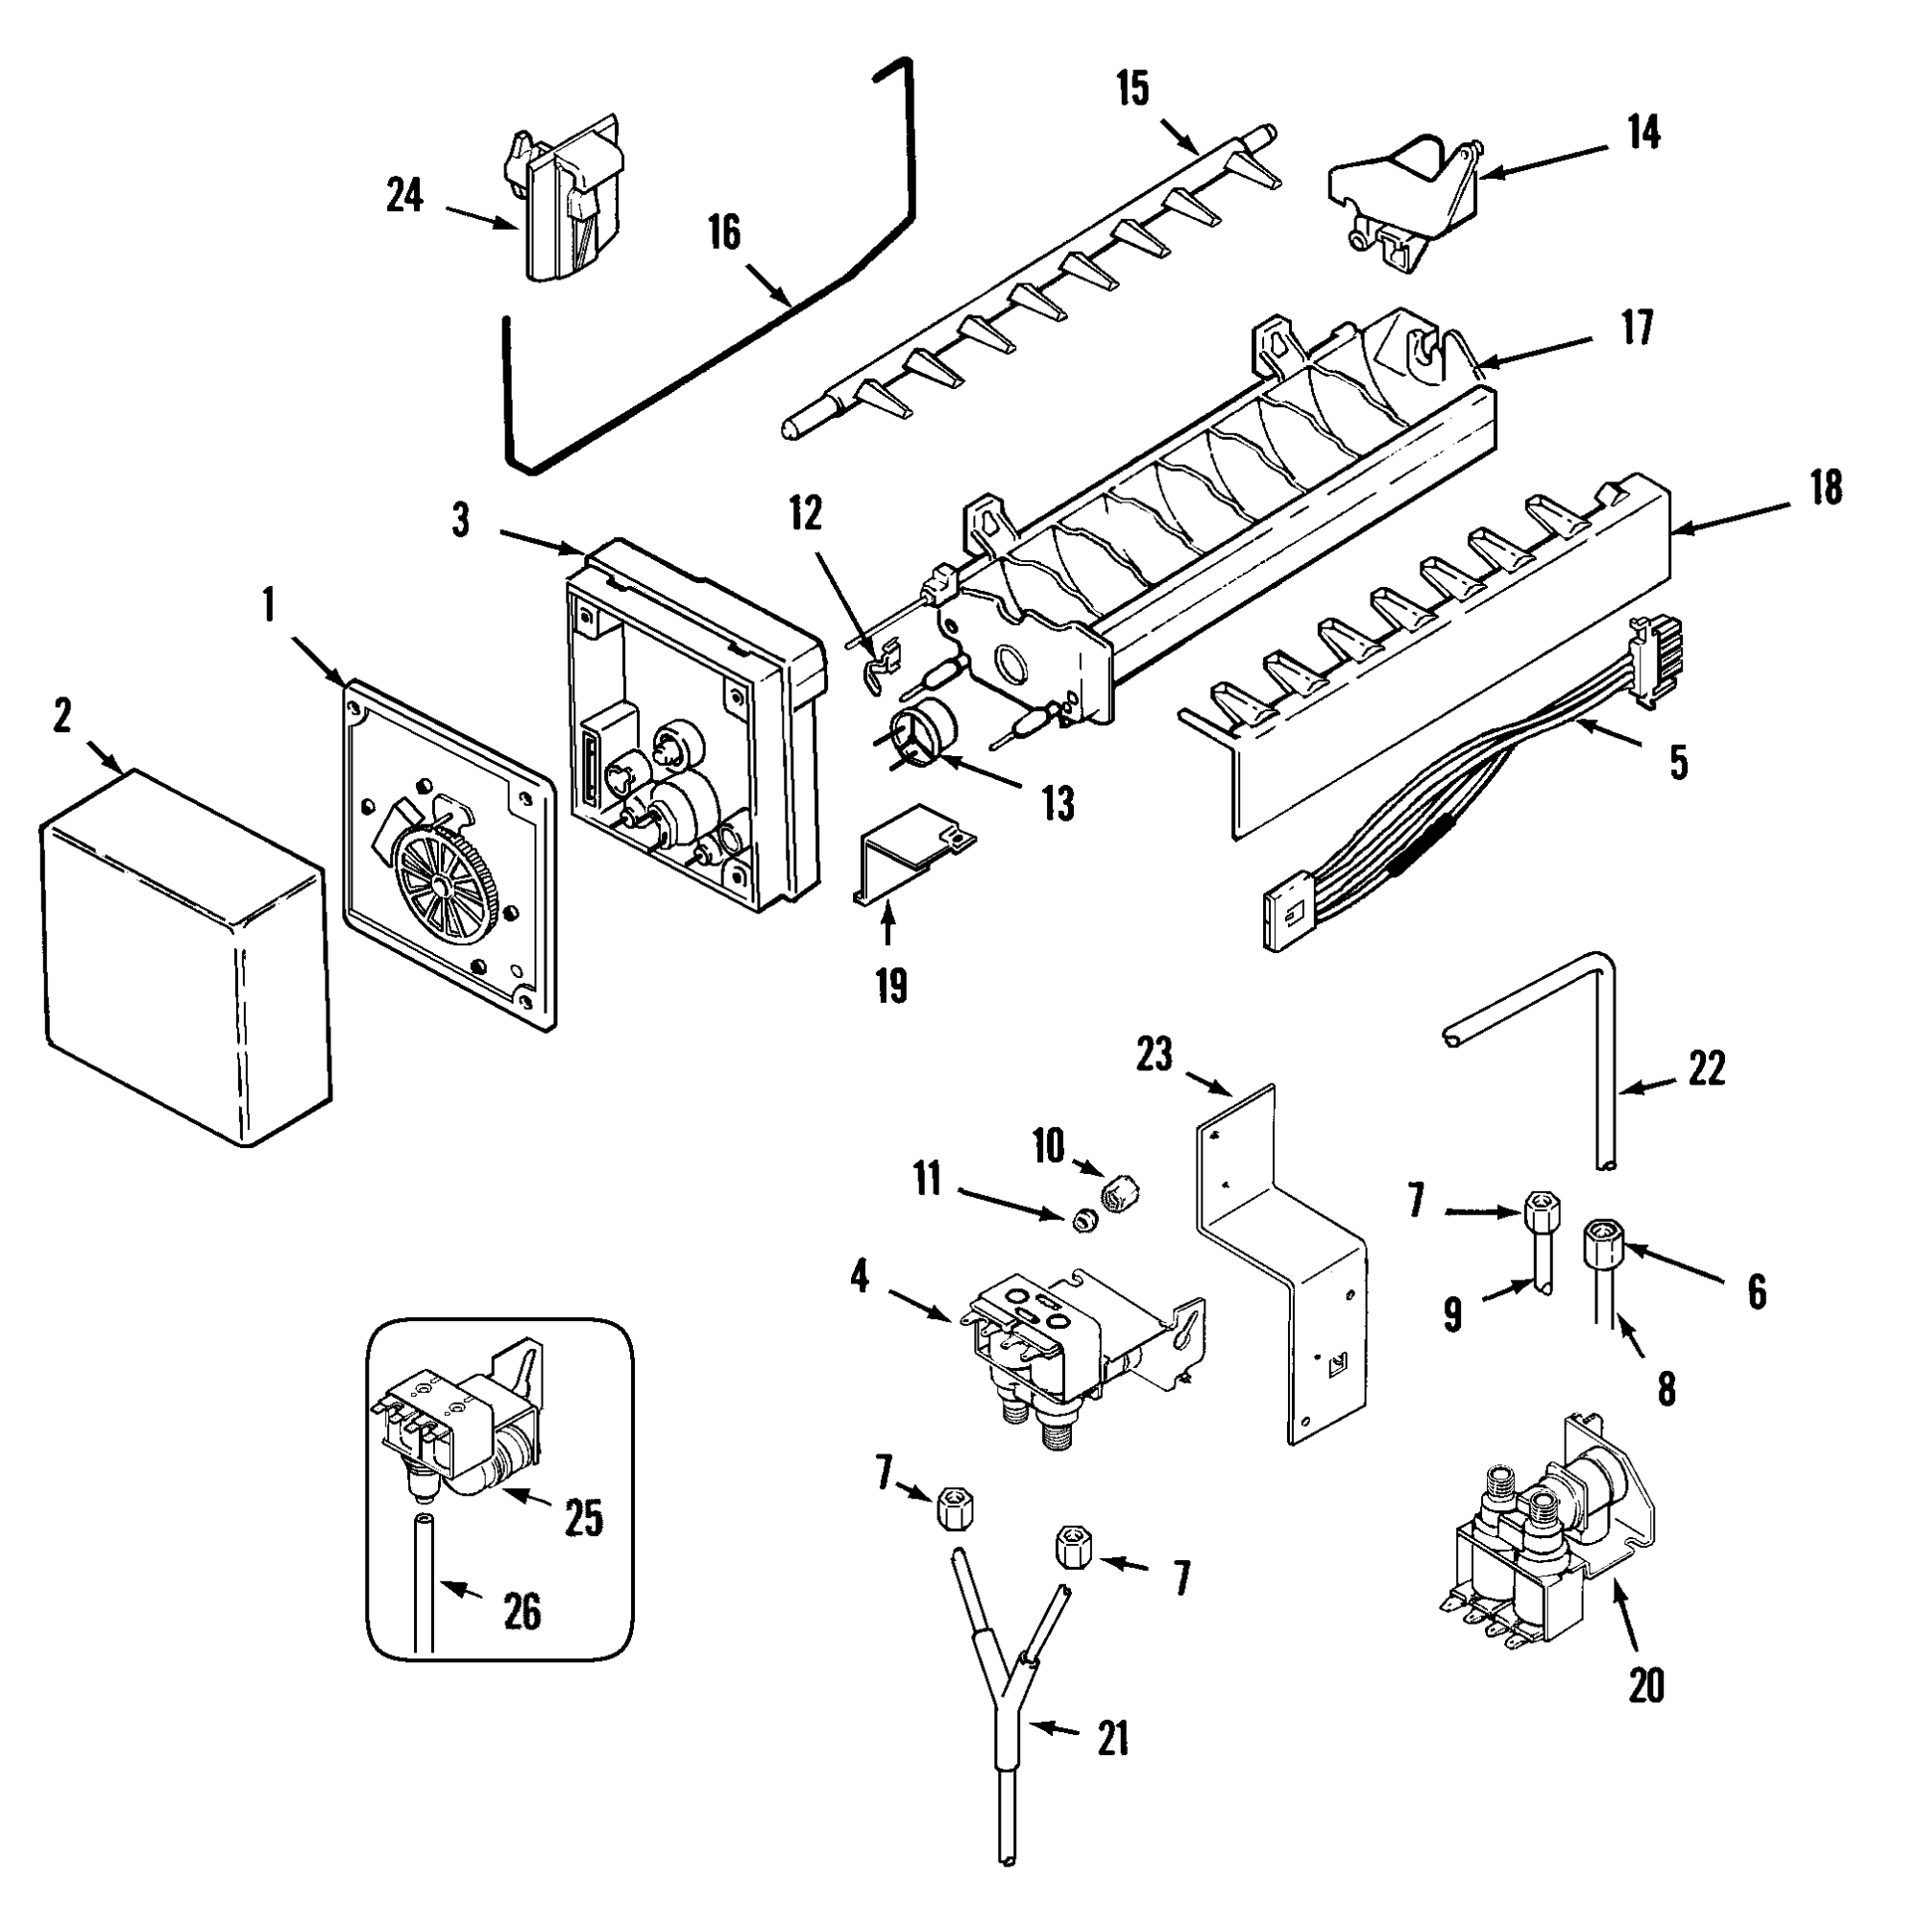 hight resolution of maytag mzd2768gew ice maker diagram